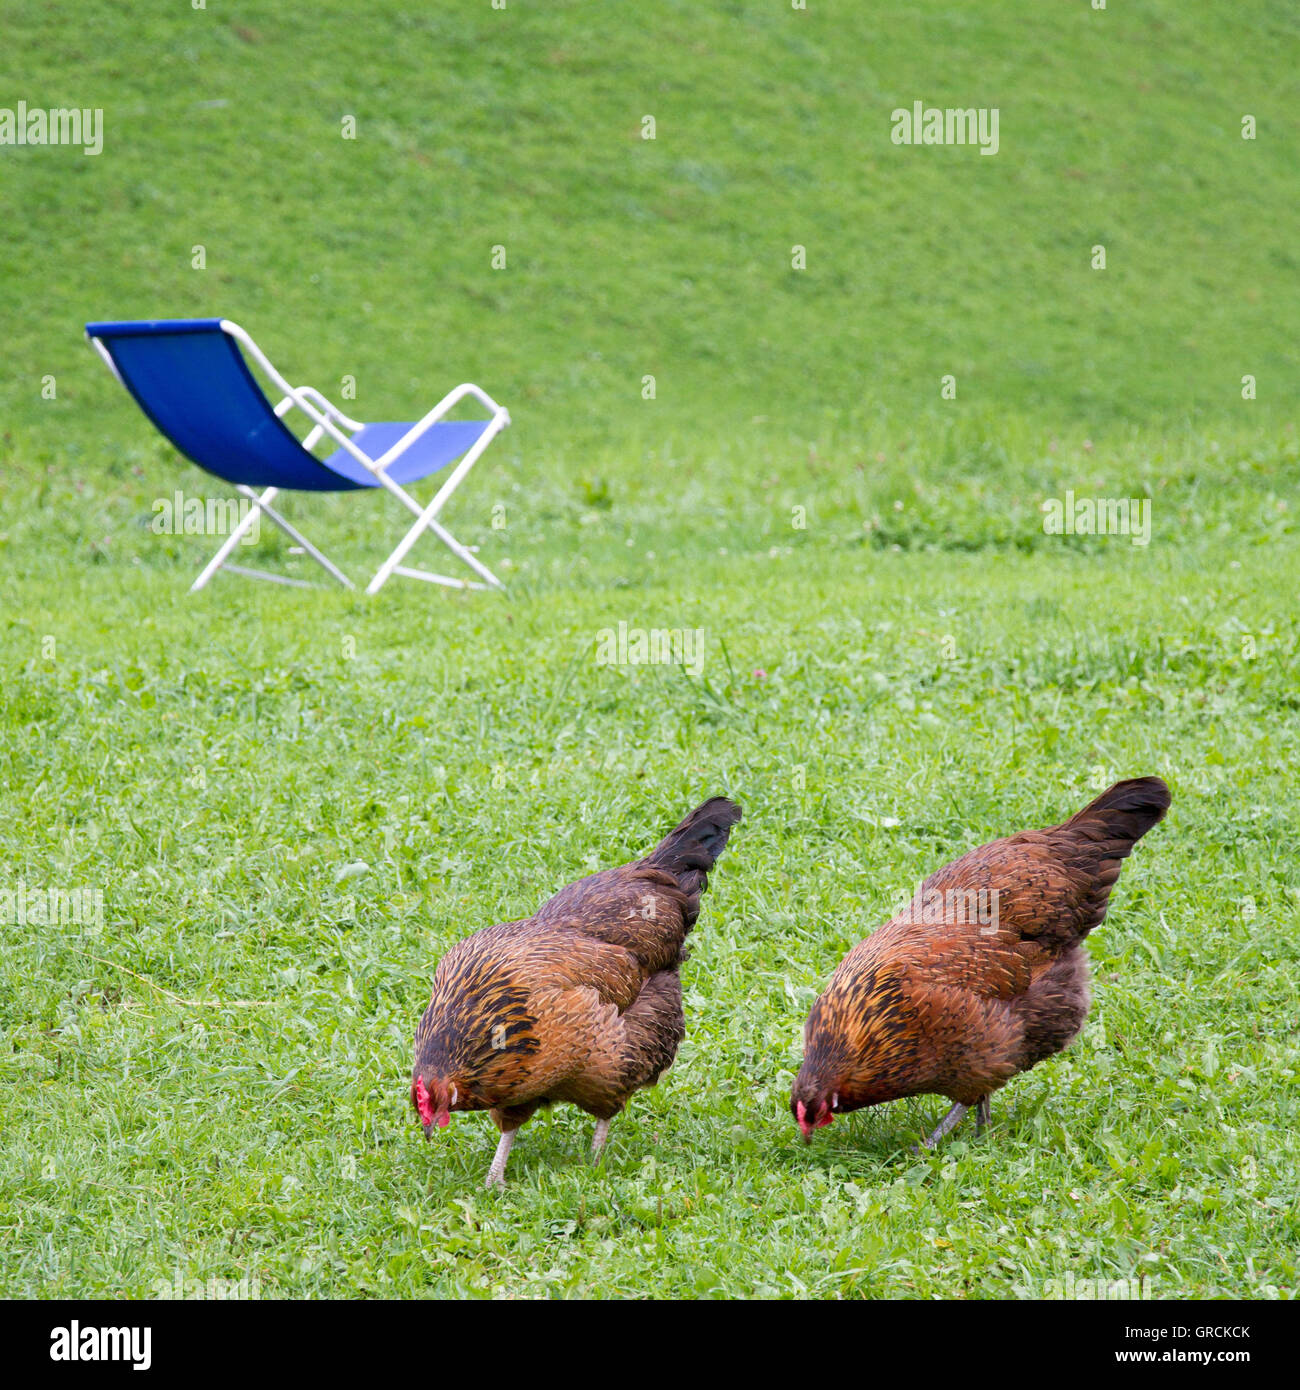 Chicken On Tour Stockfotos & Chicken On Tour Bilder - Alamy